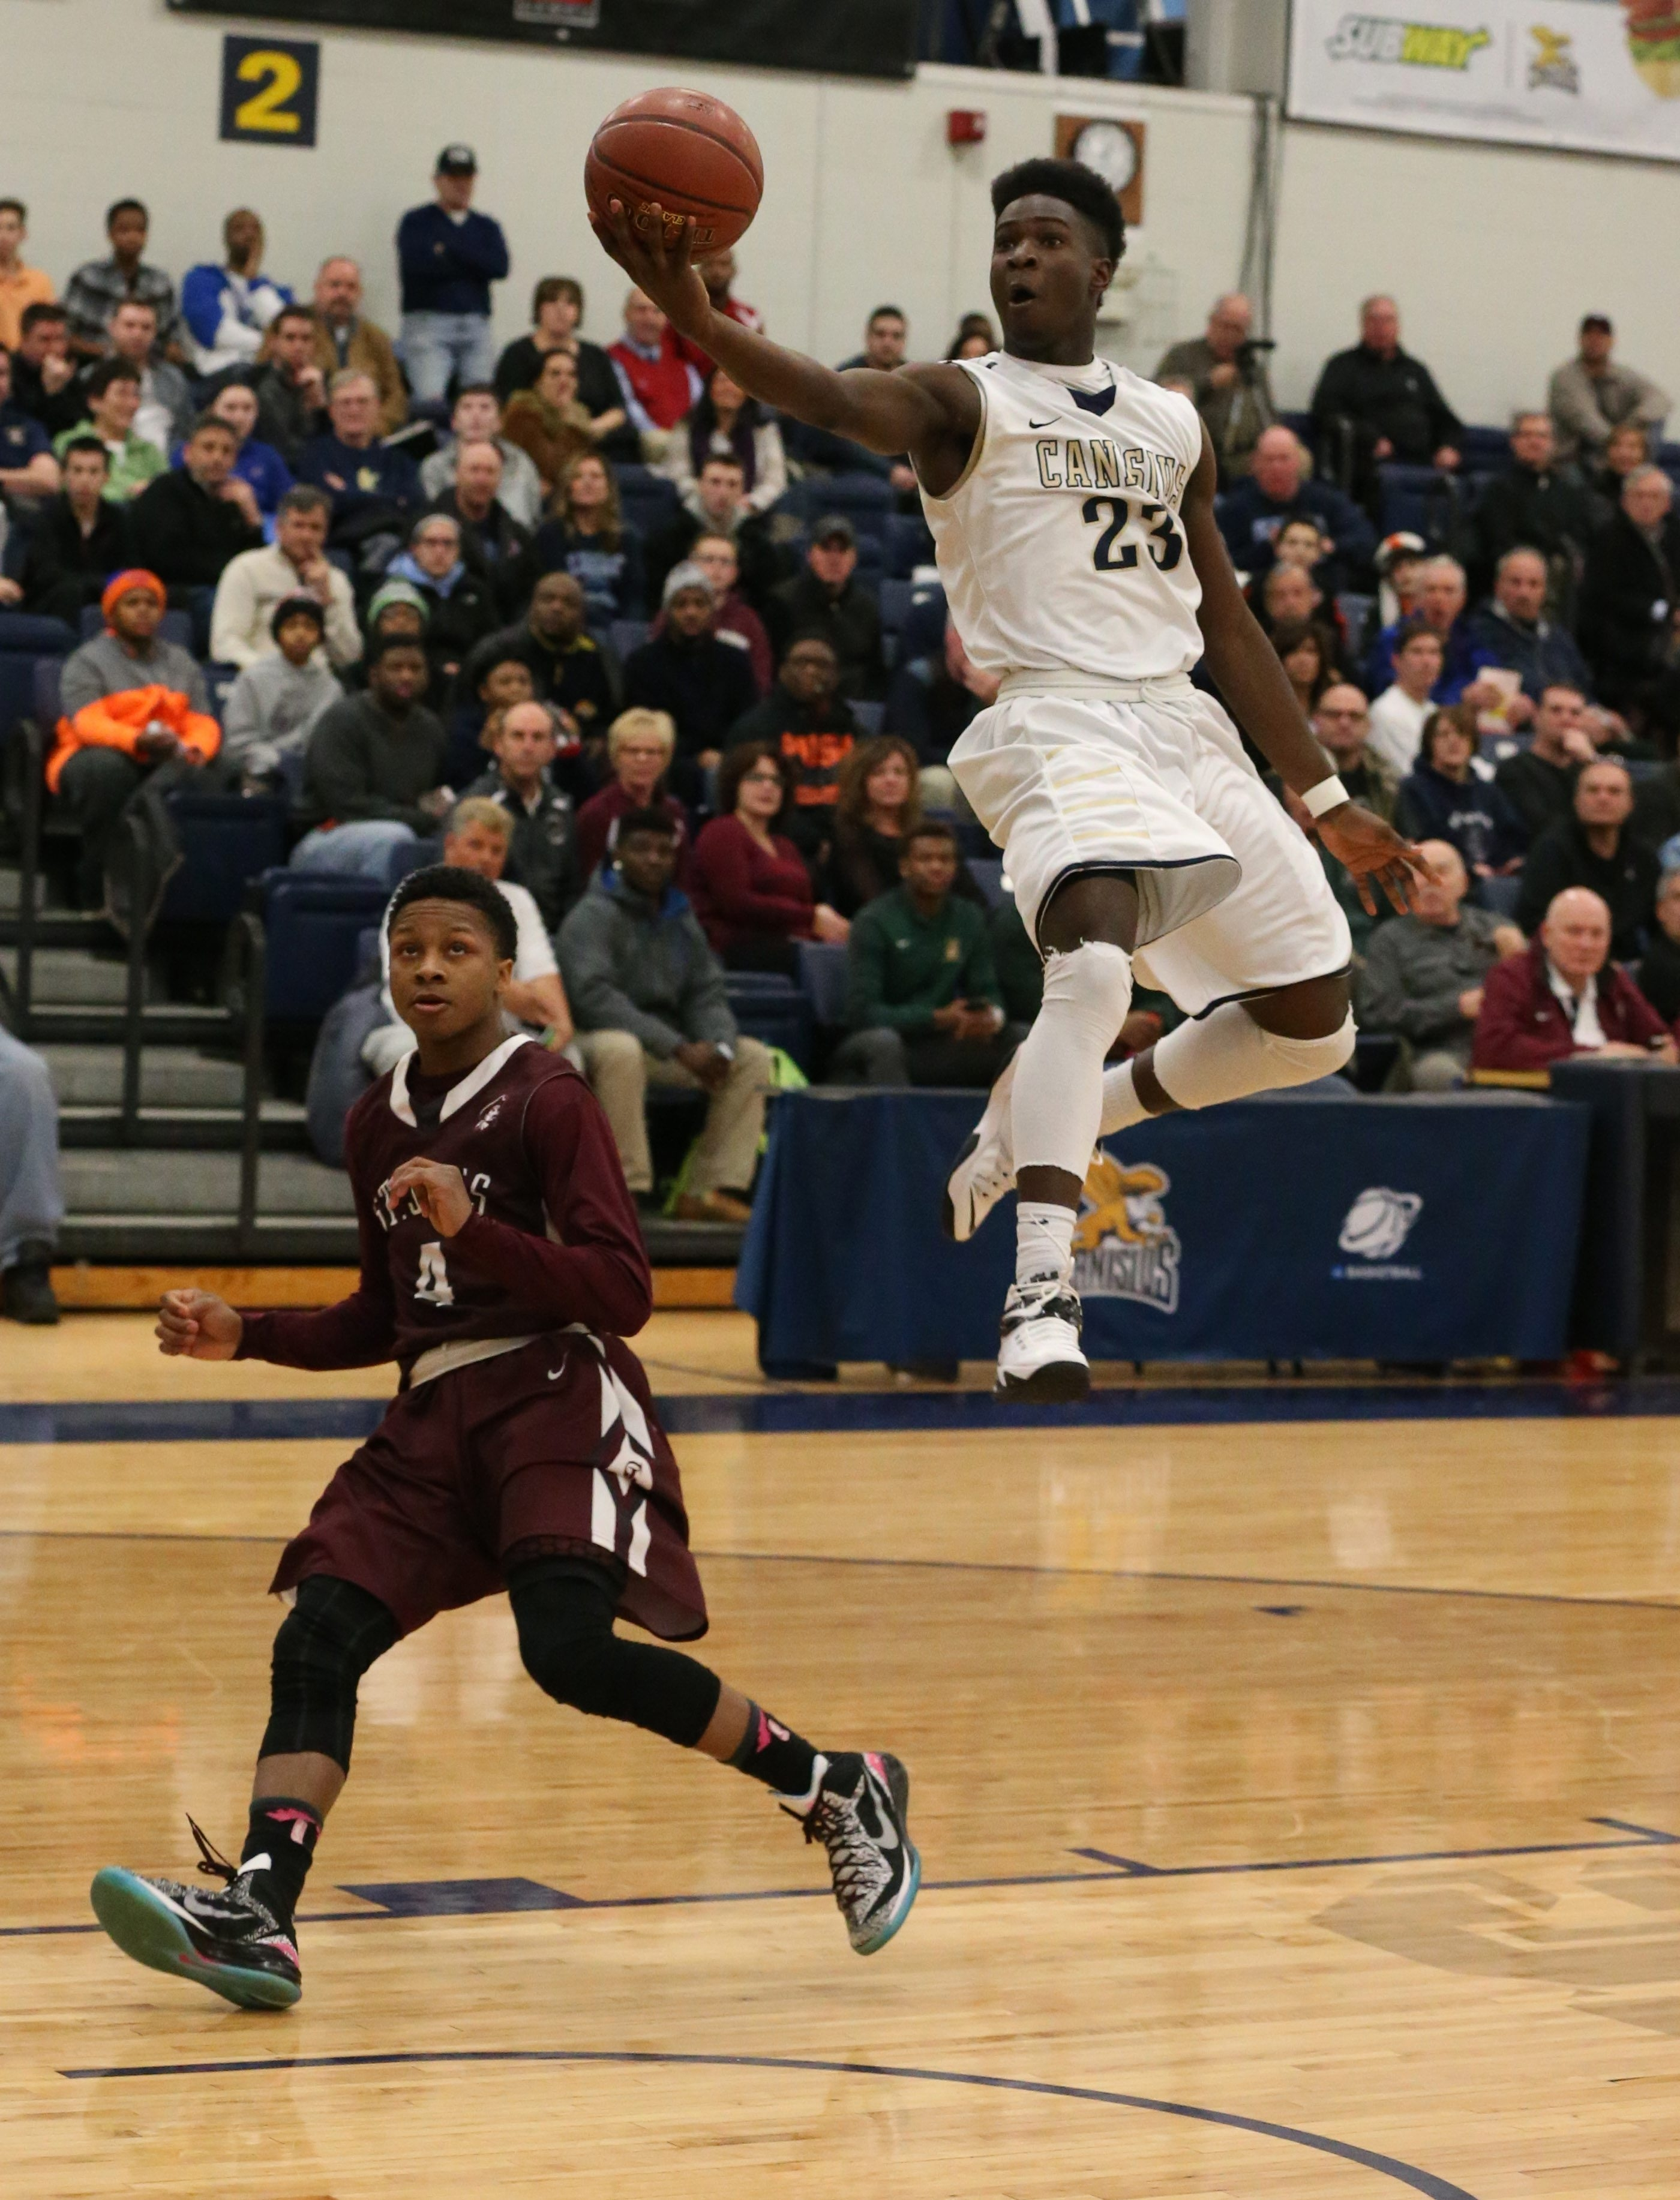 LaTerrance Reed of Canisius swoops in for two points over St. Joe's  Naseer Jackson.